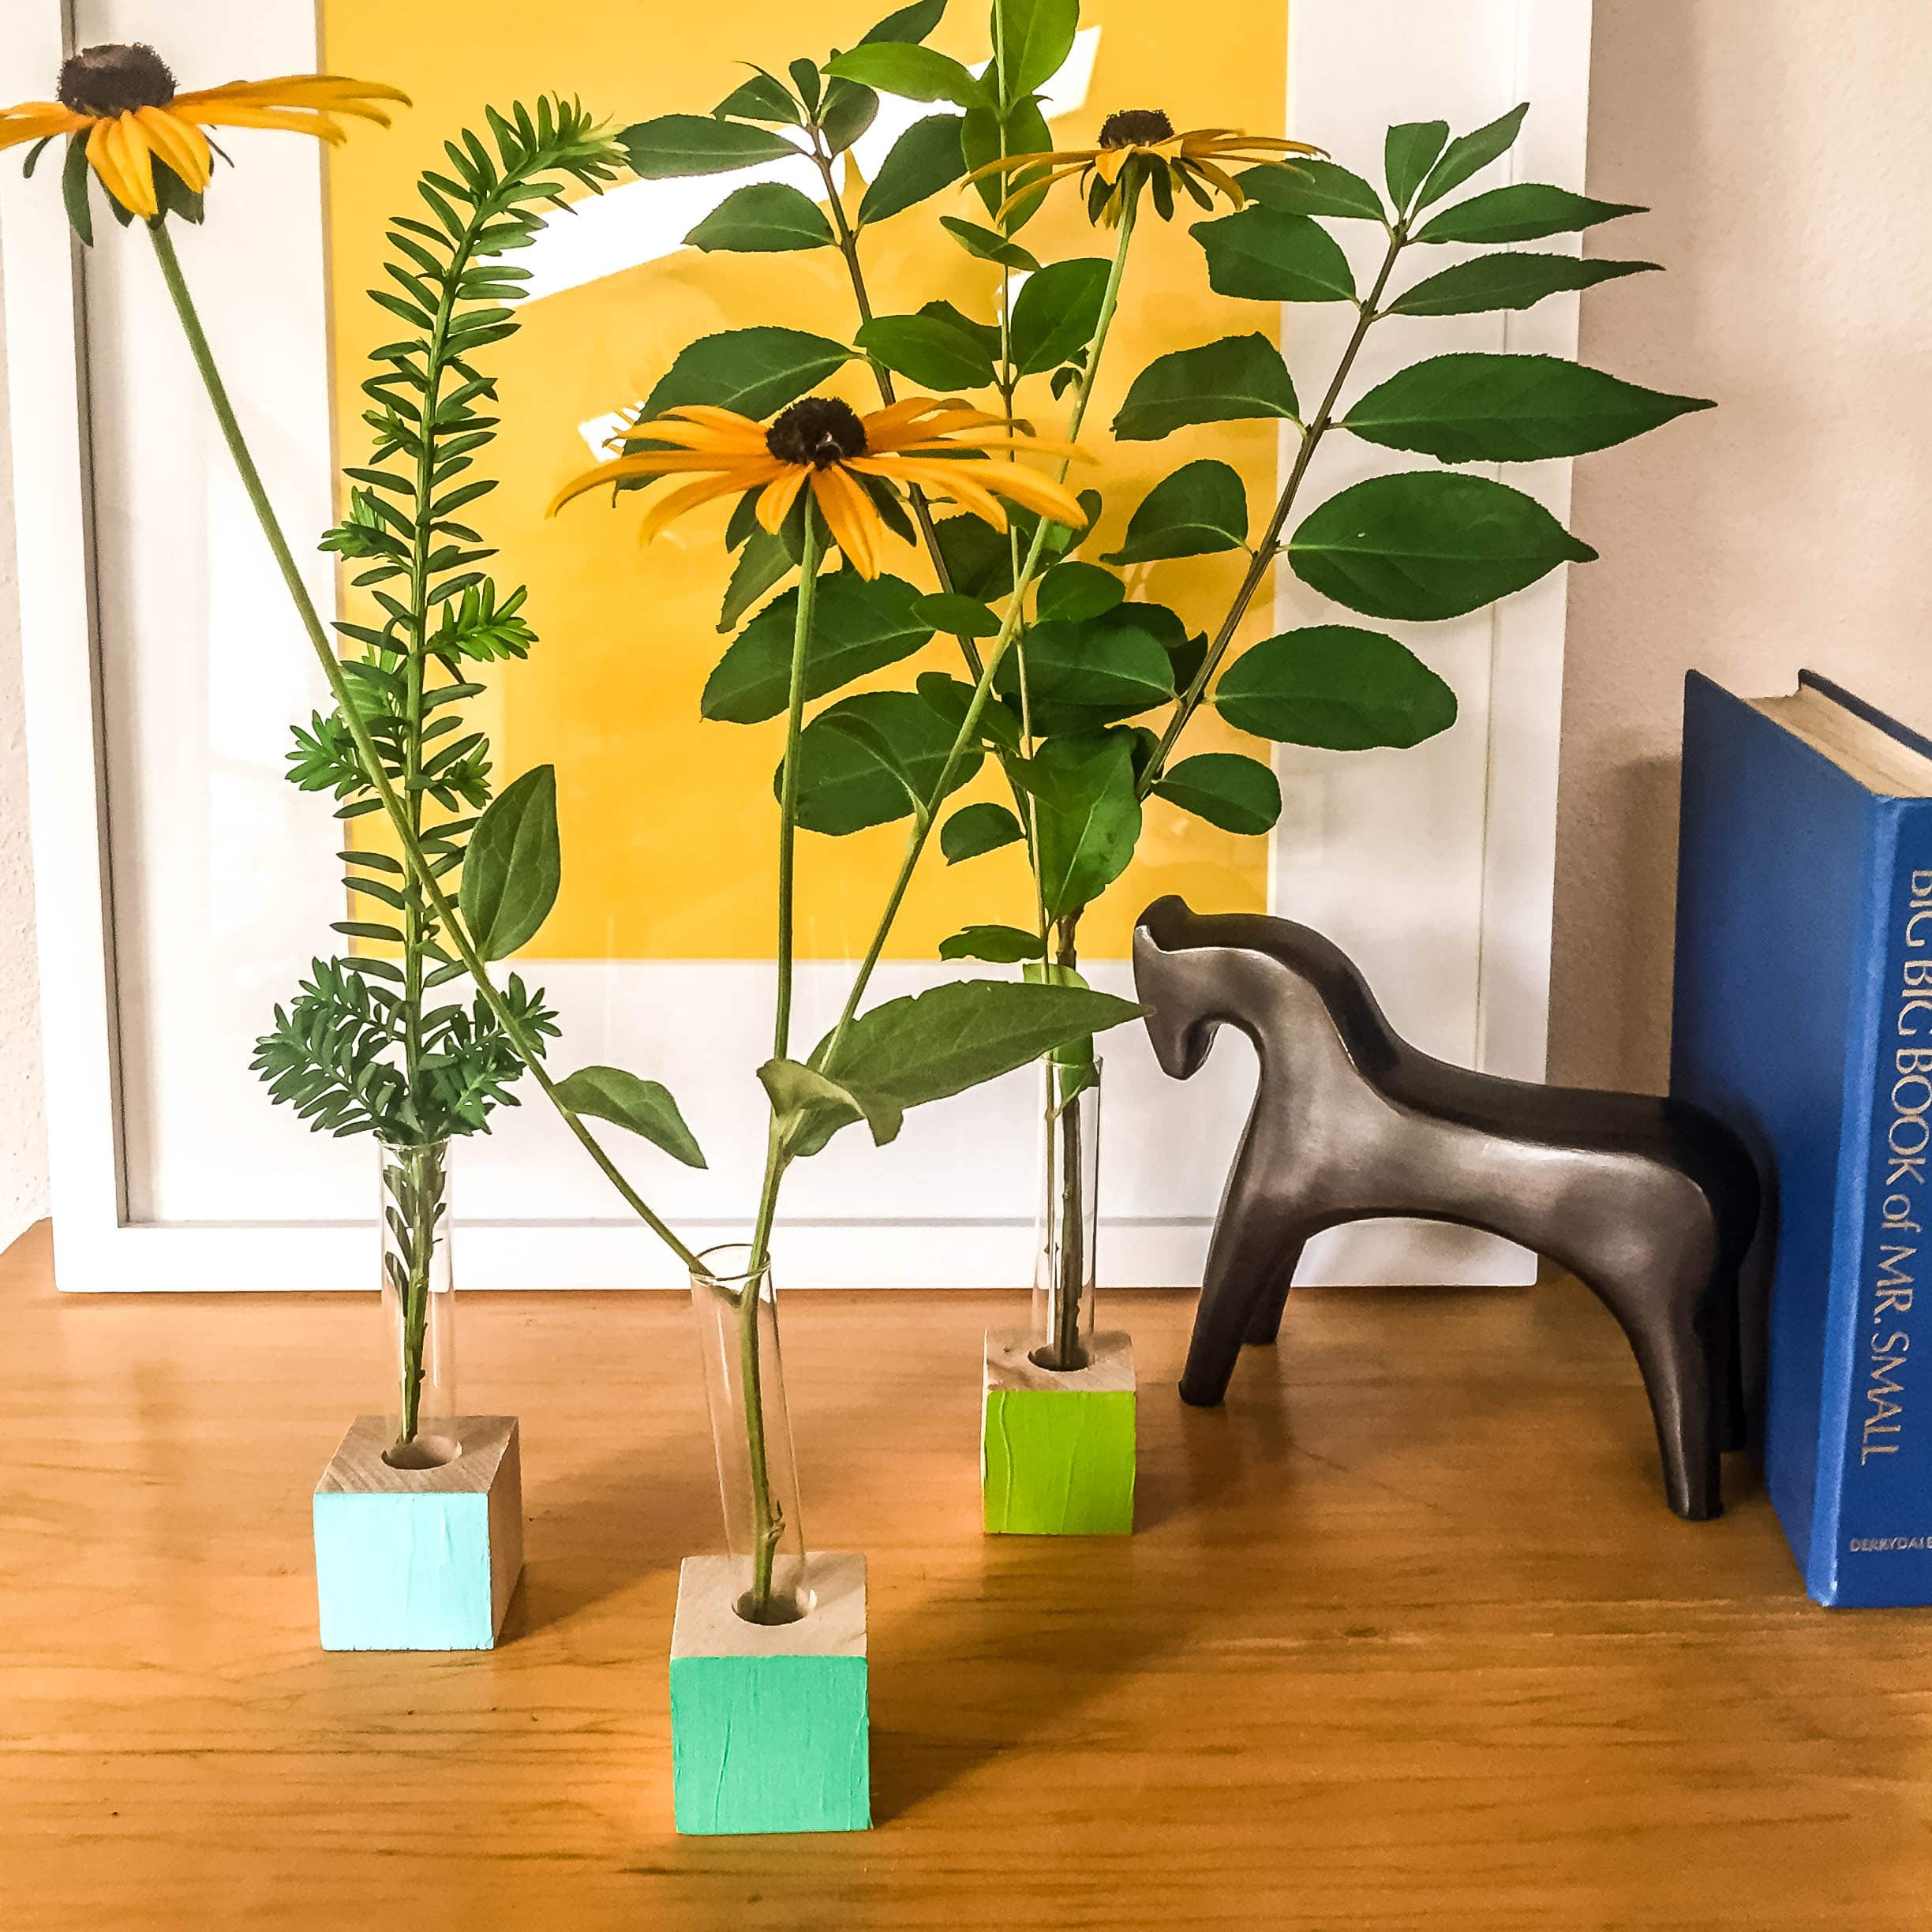 10-minute kid+parent DIY bud vase